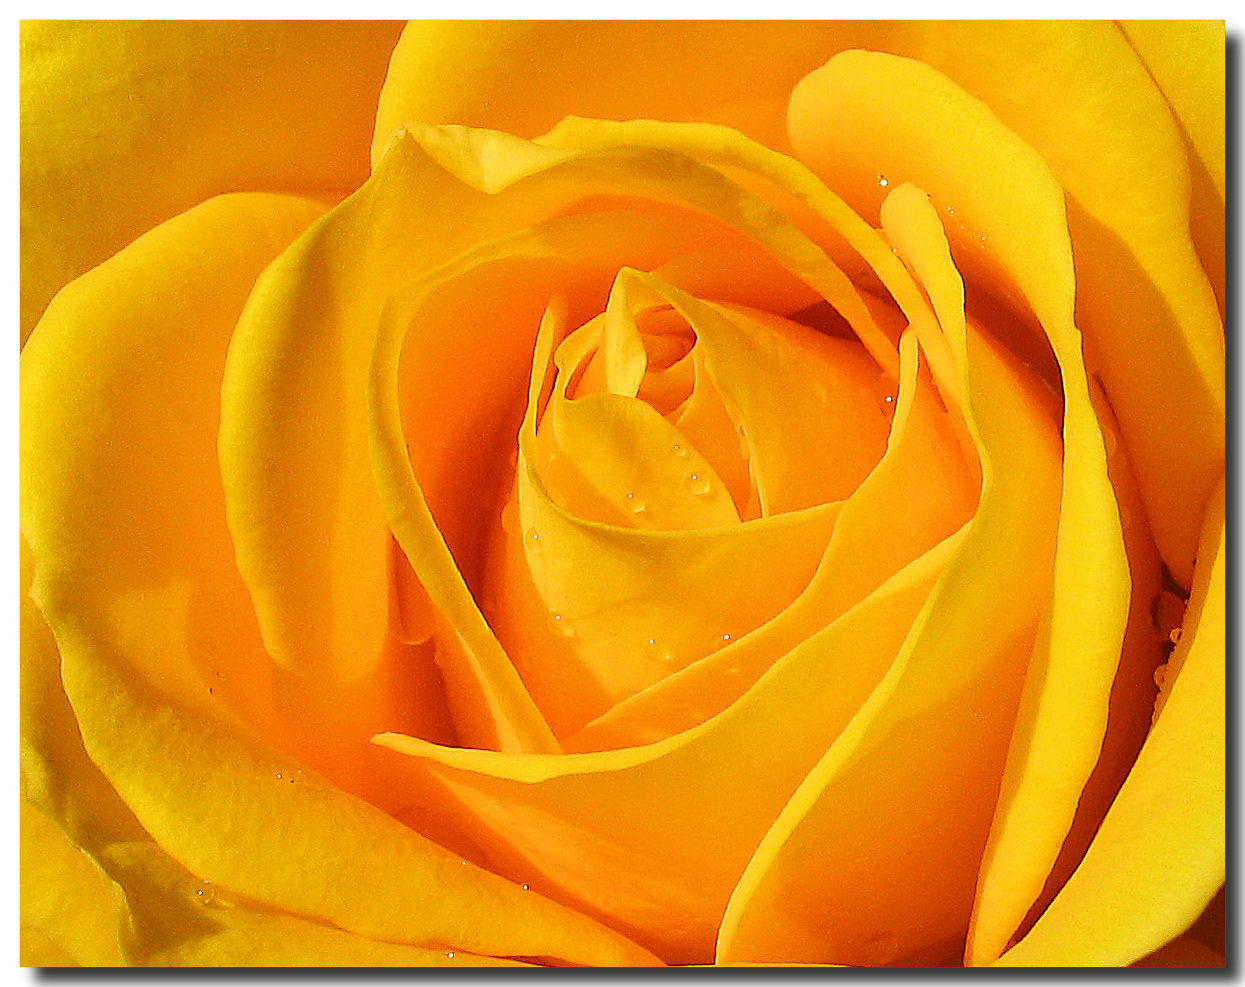 Yellow Rose Flowers Wallpapers | Top Quality Wallpapers